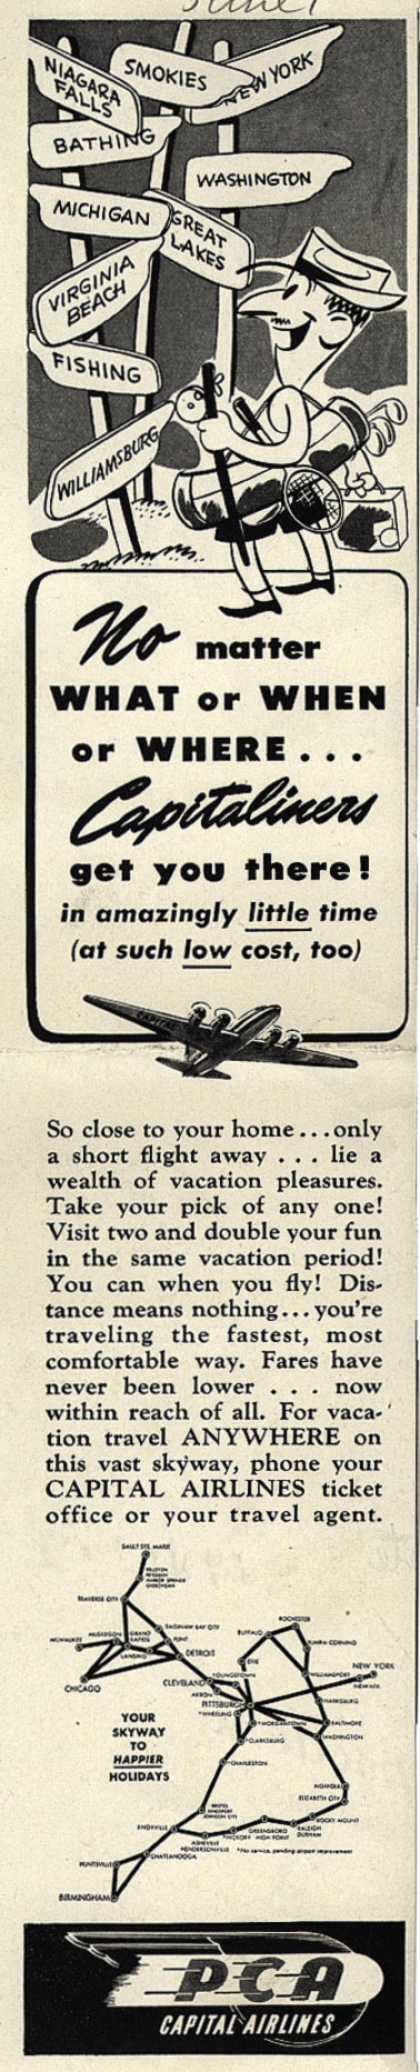 PCA Capital Airline's Capitaliners – No matter what or when or where... Capitaliners get you there (1946)